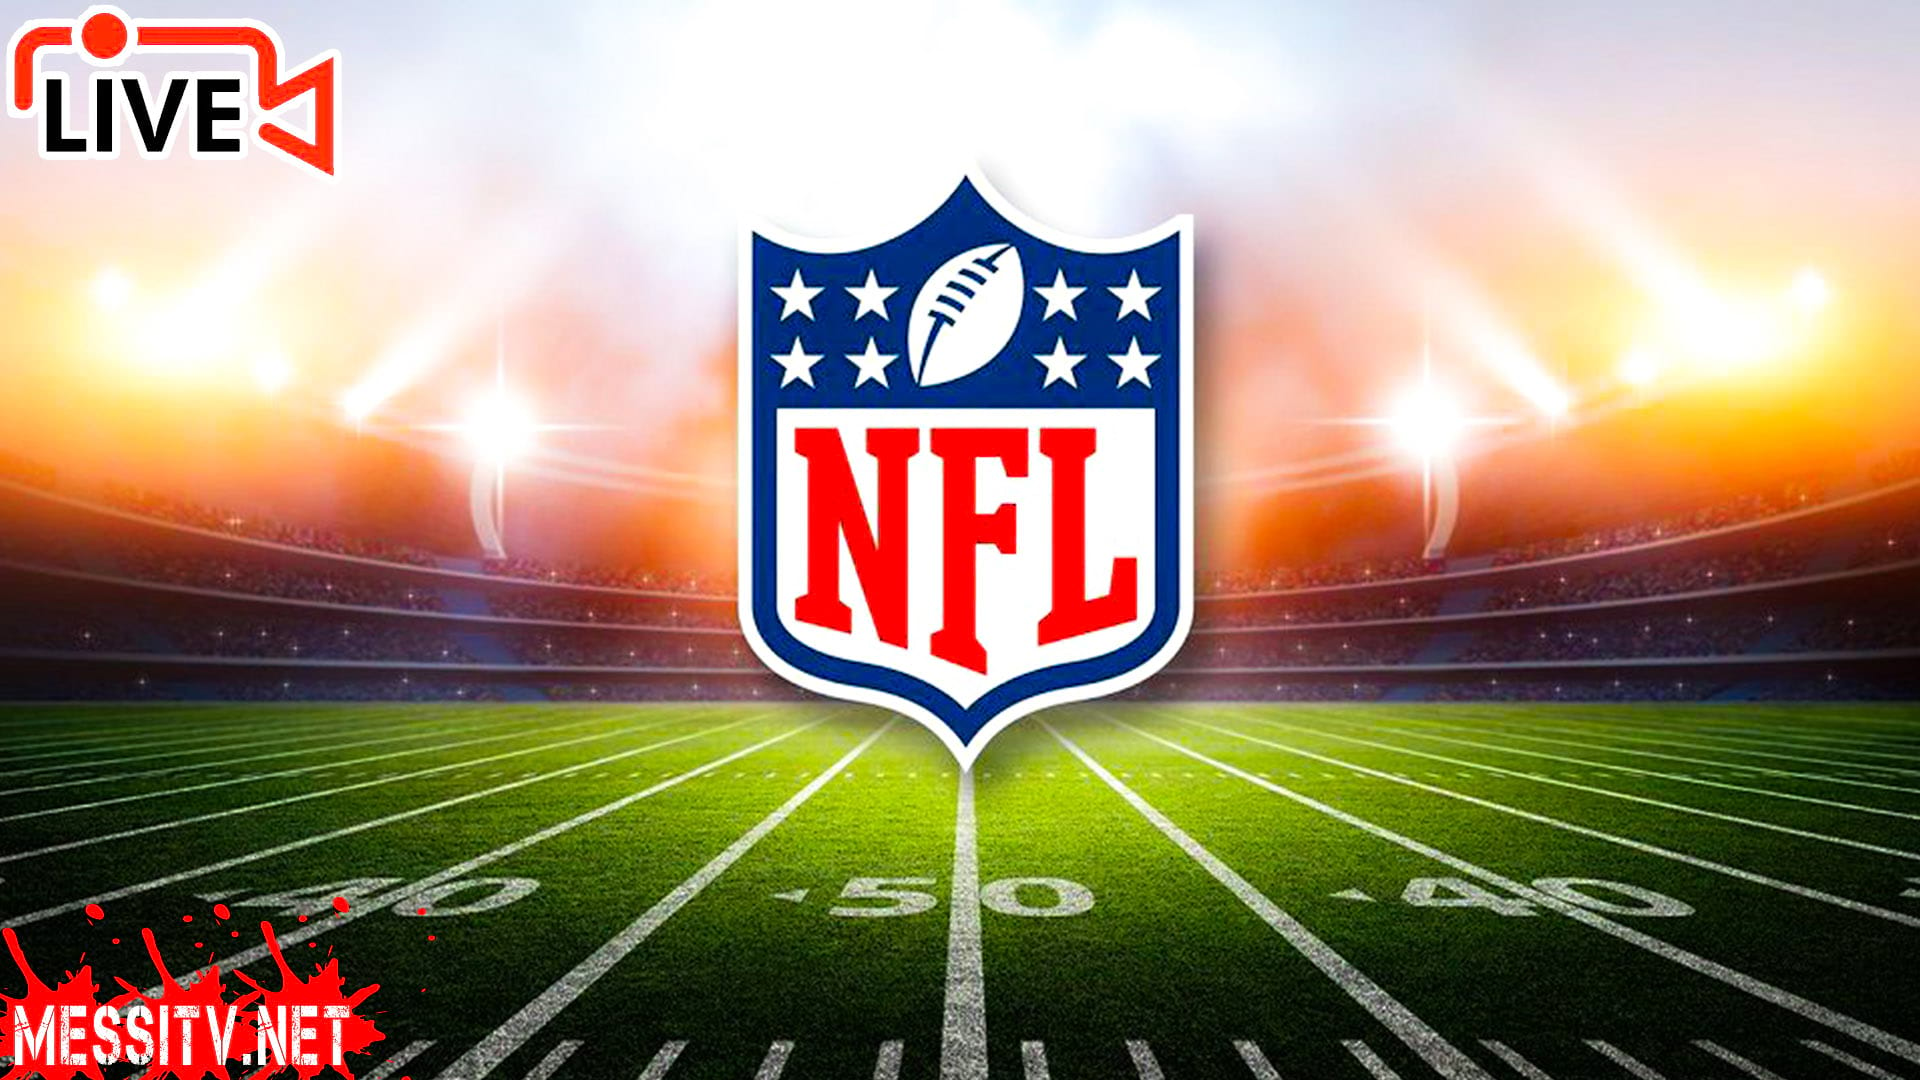 National Football League, watch NFL Live, Jaguars at Texans, Chargers at Washington, Seahawks at Colts, Jets at Panthers, Vikings at Bengals, Cardinals at Titans, 49ers at Lions, Steelers at Bills, Eagles at Falcons, Browns at Chiefs, Packers at Saints, Broncos at Giants, Dolphins at Patriots, Bears at Rams, Dolphins, Bears, Broncos, Vikings, Saints, Ravens, Browns, Jaguars, Jets, Giants, Bengals, Buccaneers, Texans, Packers, Chiefs, 49ers, Seahawks, Raiders, Chargers, Rams, Washington, Cardinals, Bills, Panthers, Falcons, Titans, Lions, Steelers, Colts, Cowboys, Eagles, #Dolphins #FinsUp #MIA #Bears #CHI #DaBears #Broncos #DEN #SB50 #BroncosCountry #Vikings #Skol #MIN #Saints #SaintsGameday #NO #Ravens #RavensFlock #Browns #CLE #Jaguars #DUUUVAL #JAX #Jets #NYJ #Giants #NYG #TogetherBlue #Bengals #RuleTheJungle #CIN #Buccaneers #GoBucs #TB #Texans #WeAreTexans #HOU #Packers #GB #GoPackGo #Chiefs #ChiefsKingdom #KC #49ers #SF #FTTB #Seahawks #GoHawks #SEA #Raiders #RaiderNation #LV #Chargers #BoltUp #LAC #Rams #RamsHouse #LAR #Washington #TeamCena #Cardinals #RedSea #Bills #BUF #BillsMafia #Panthers #KeepPounding #CAR #Falcons #RiseUpATL #ATL #Titans #TitanUp #TEN #Lions #OnePride #DET #Steelers #HereWeGo #PIT #Colts #ForTheShoe #IND #Cowboys #DallasCowboys #DAL #Eagles #FlyEaglesFly #PHI #NYJ